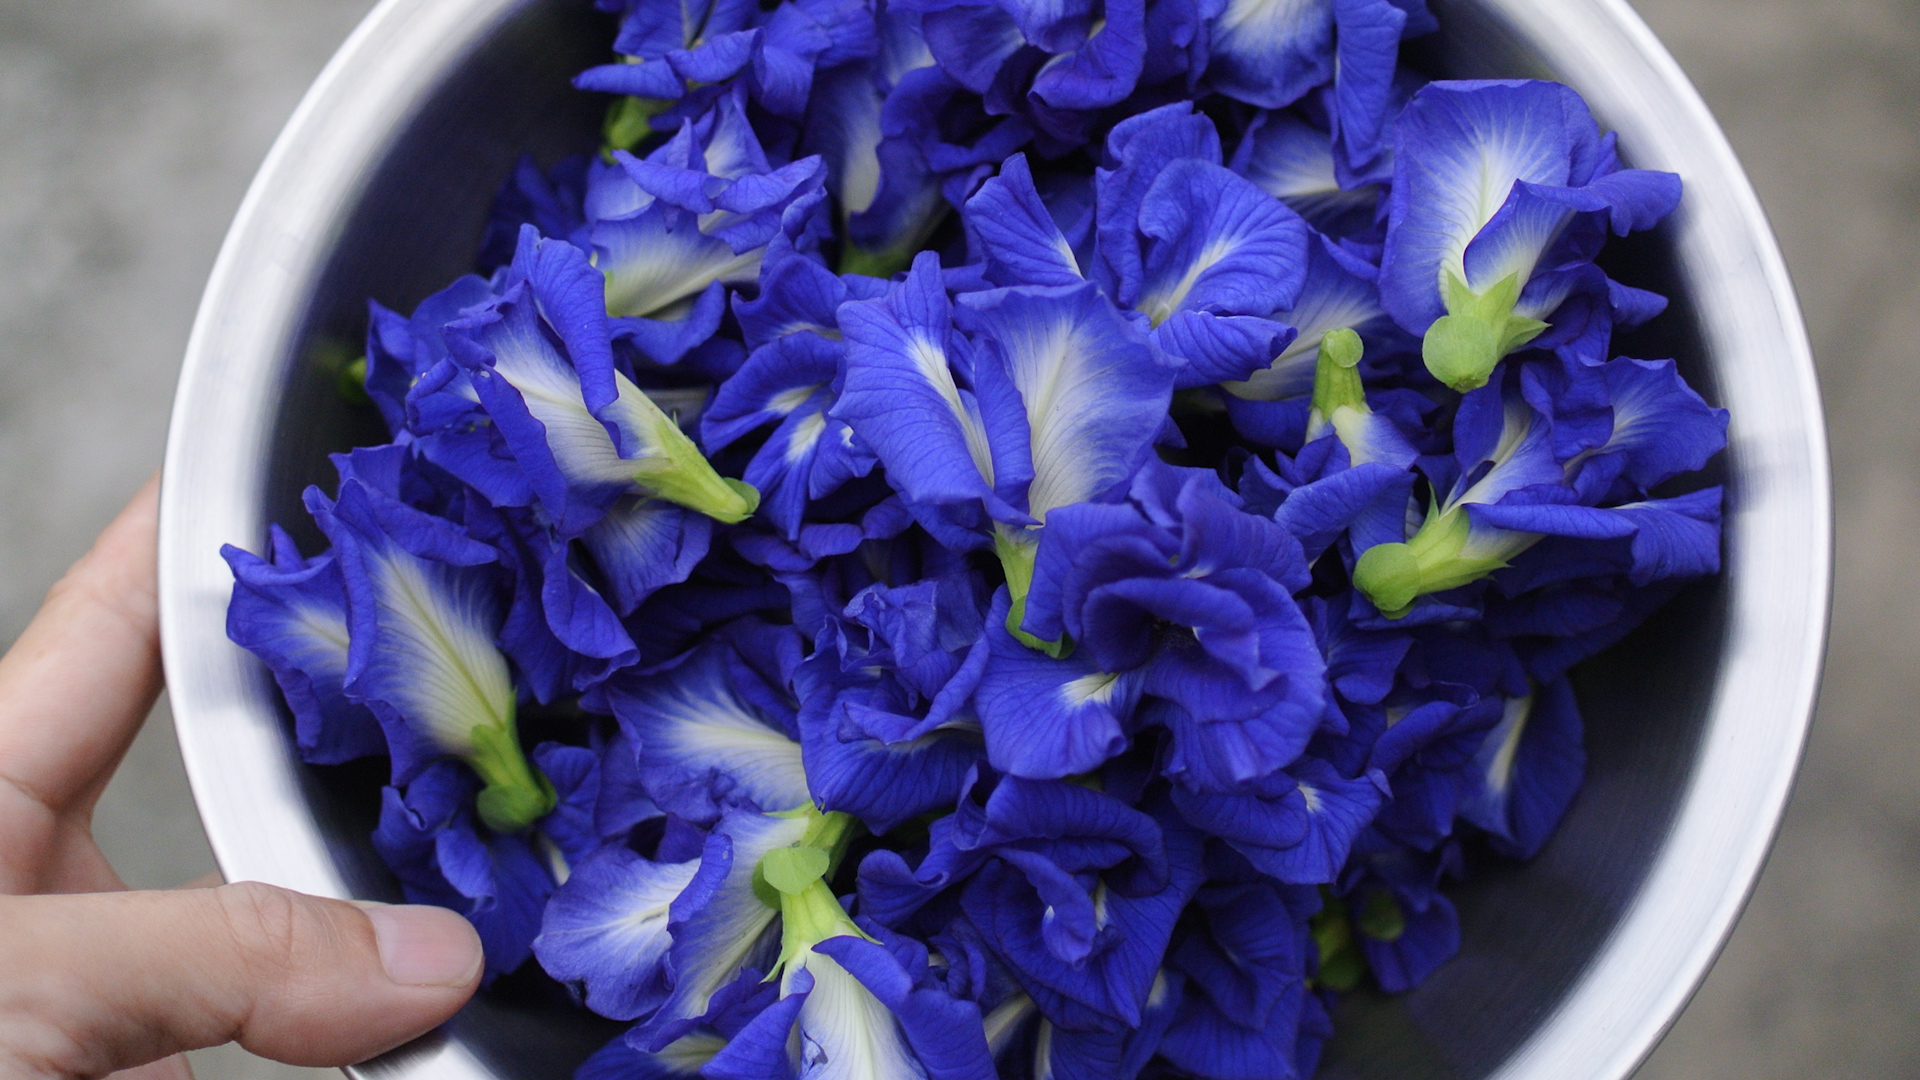 This Flower Changes The Color Of Food Naturally Nowthis